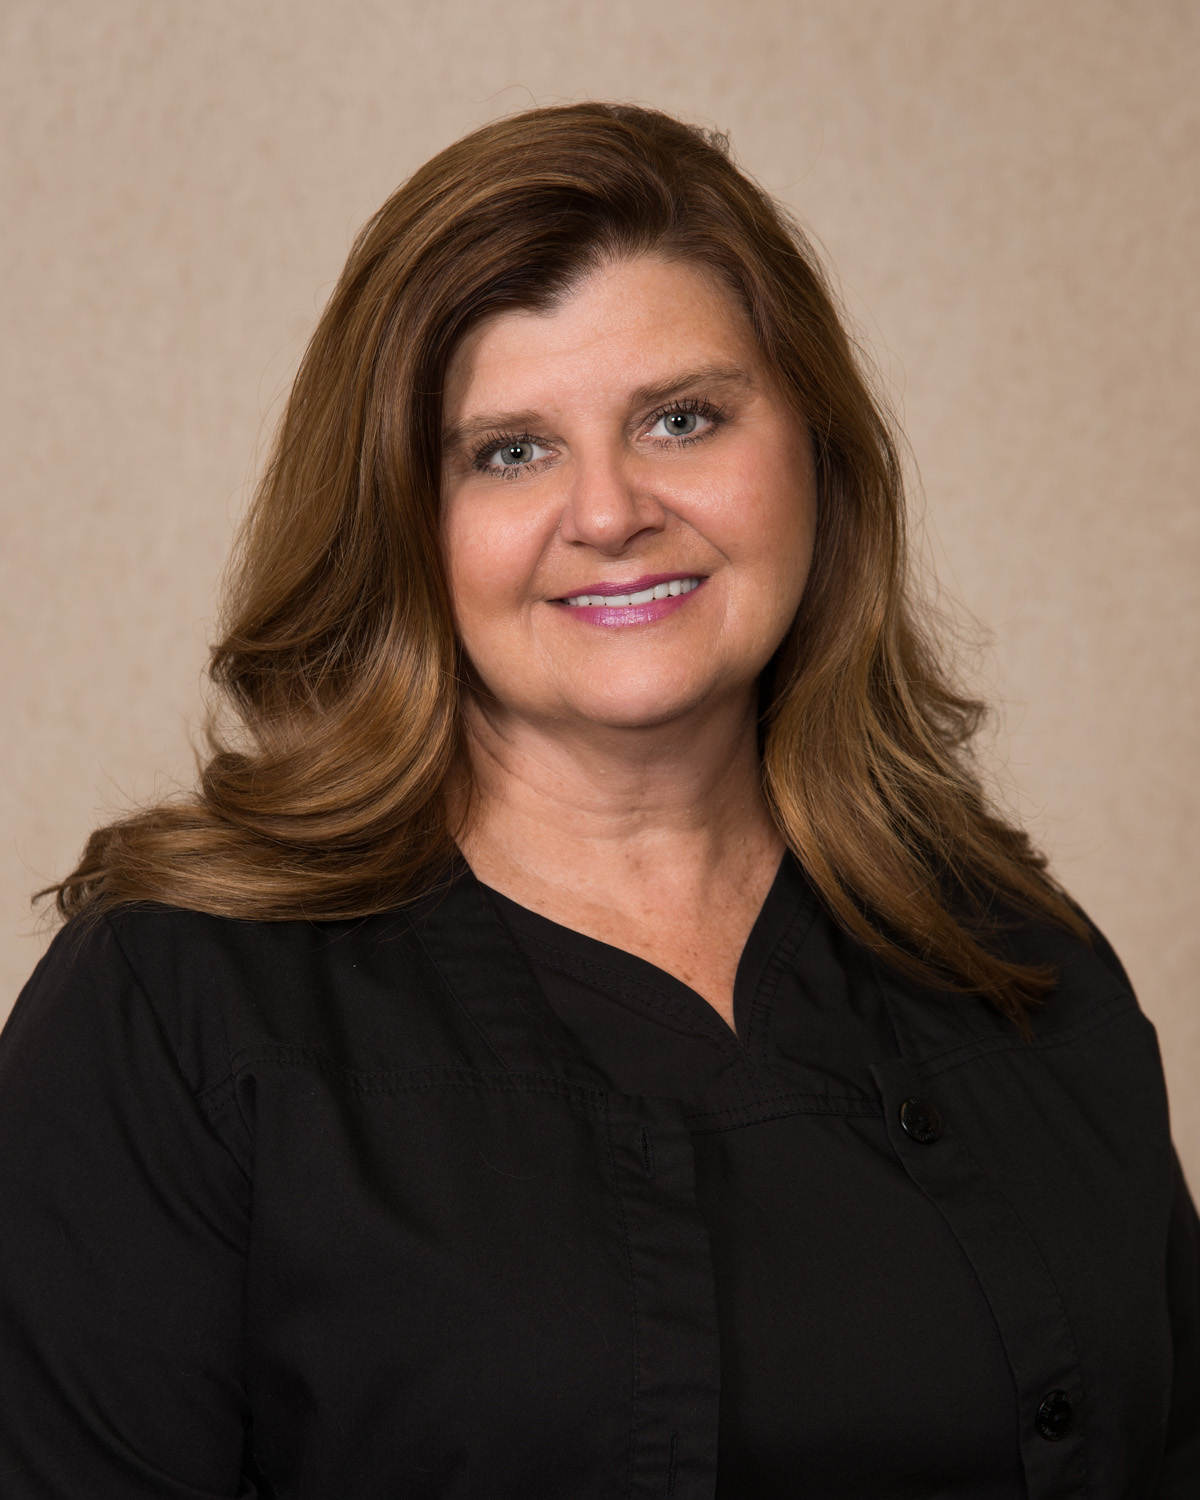 Sherri at Stults Family Dentistry